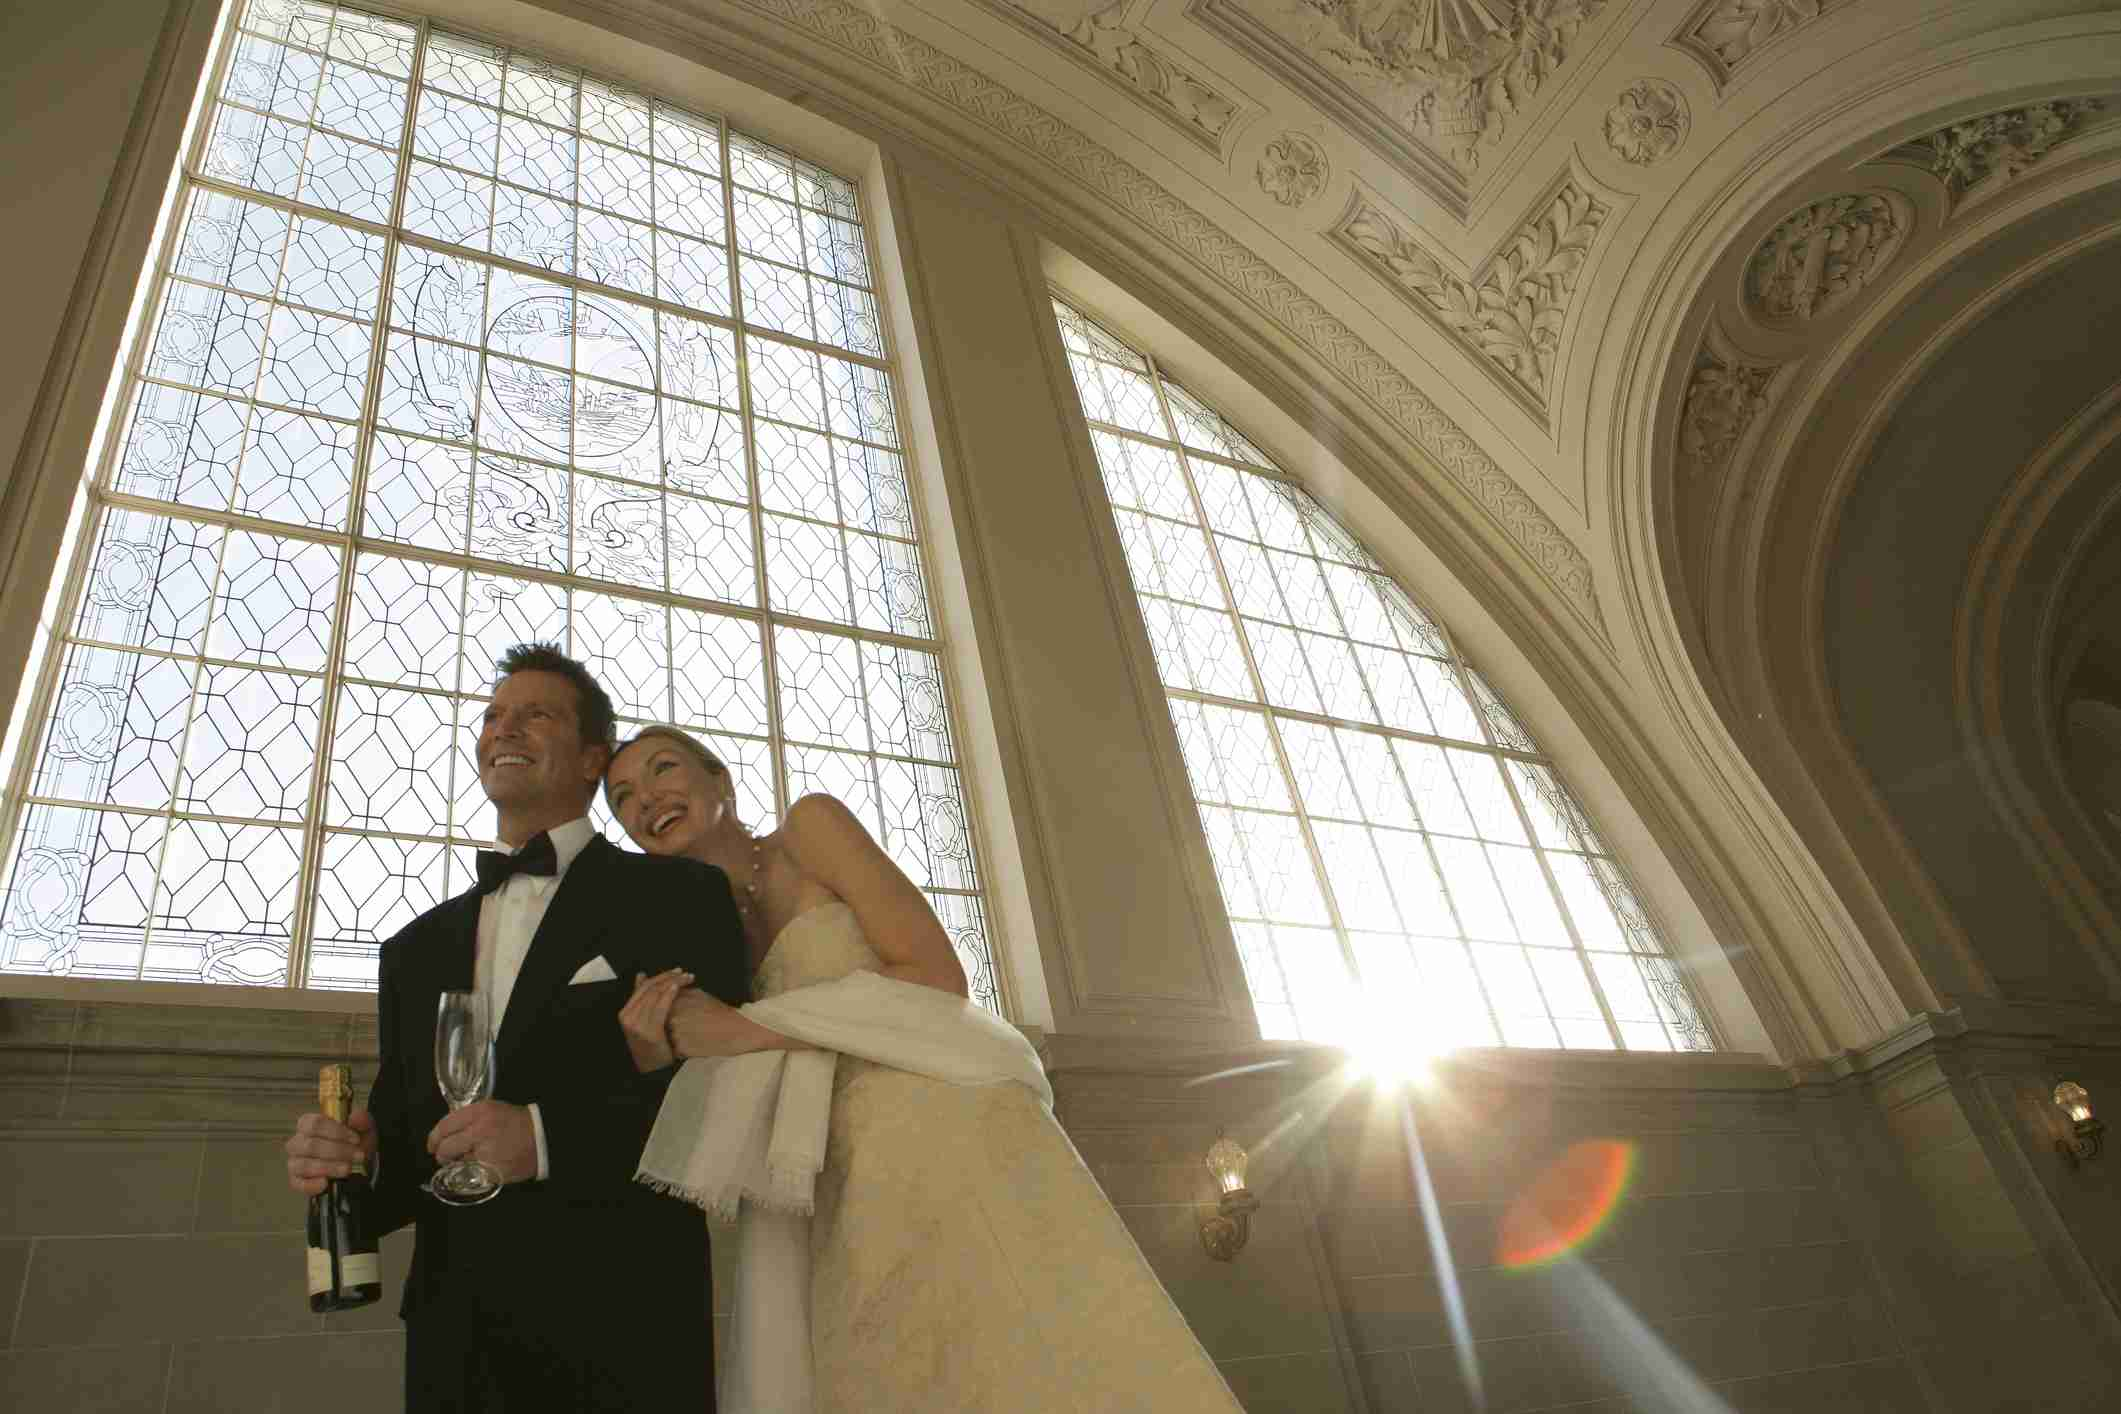 bride and groom walking through a cathedral-like entry area during their reception